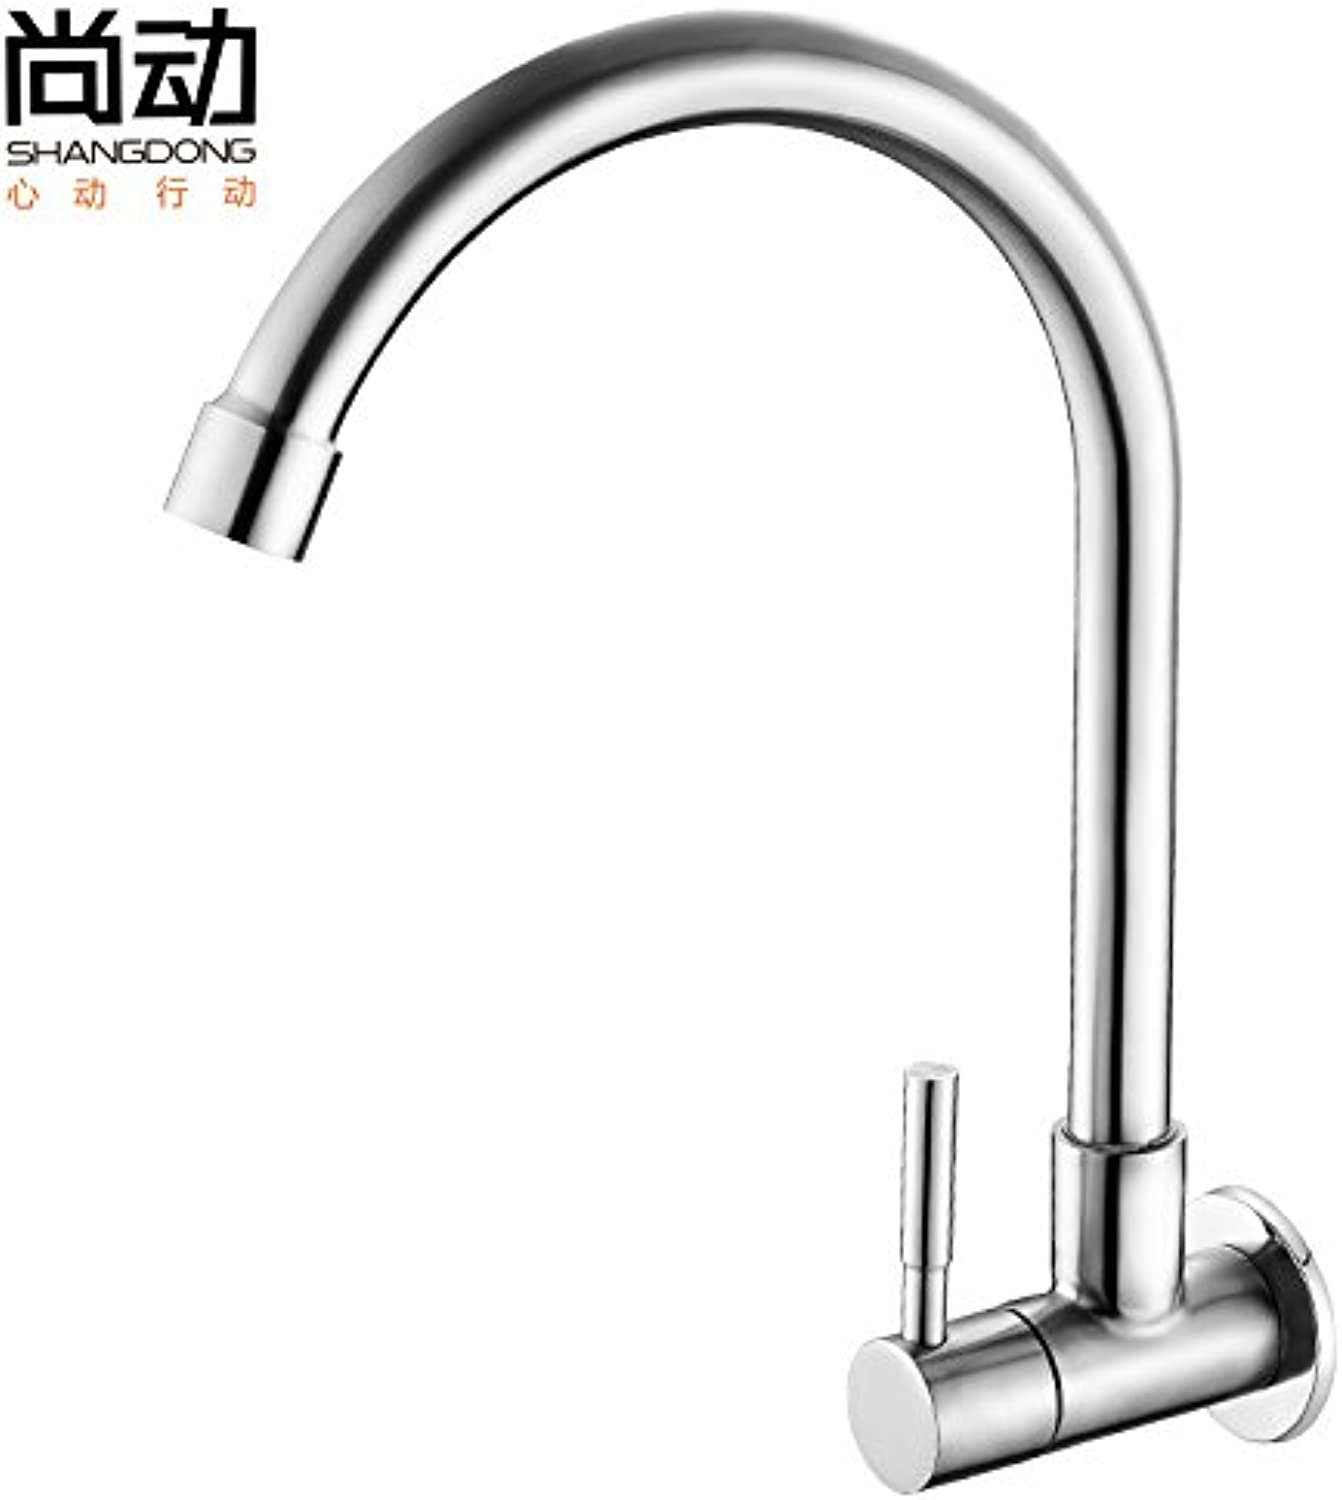 ETERNAL QUALITY Bathroom Sink Basin Tap Brass Mixer Tap Washroom Mixer Faucet The wall mounted single cold water faucet kitchen faucet dish washing basin of the sink fauc